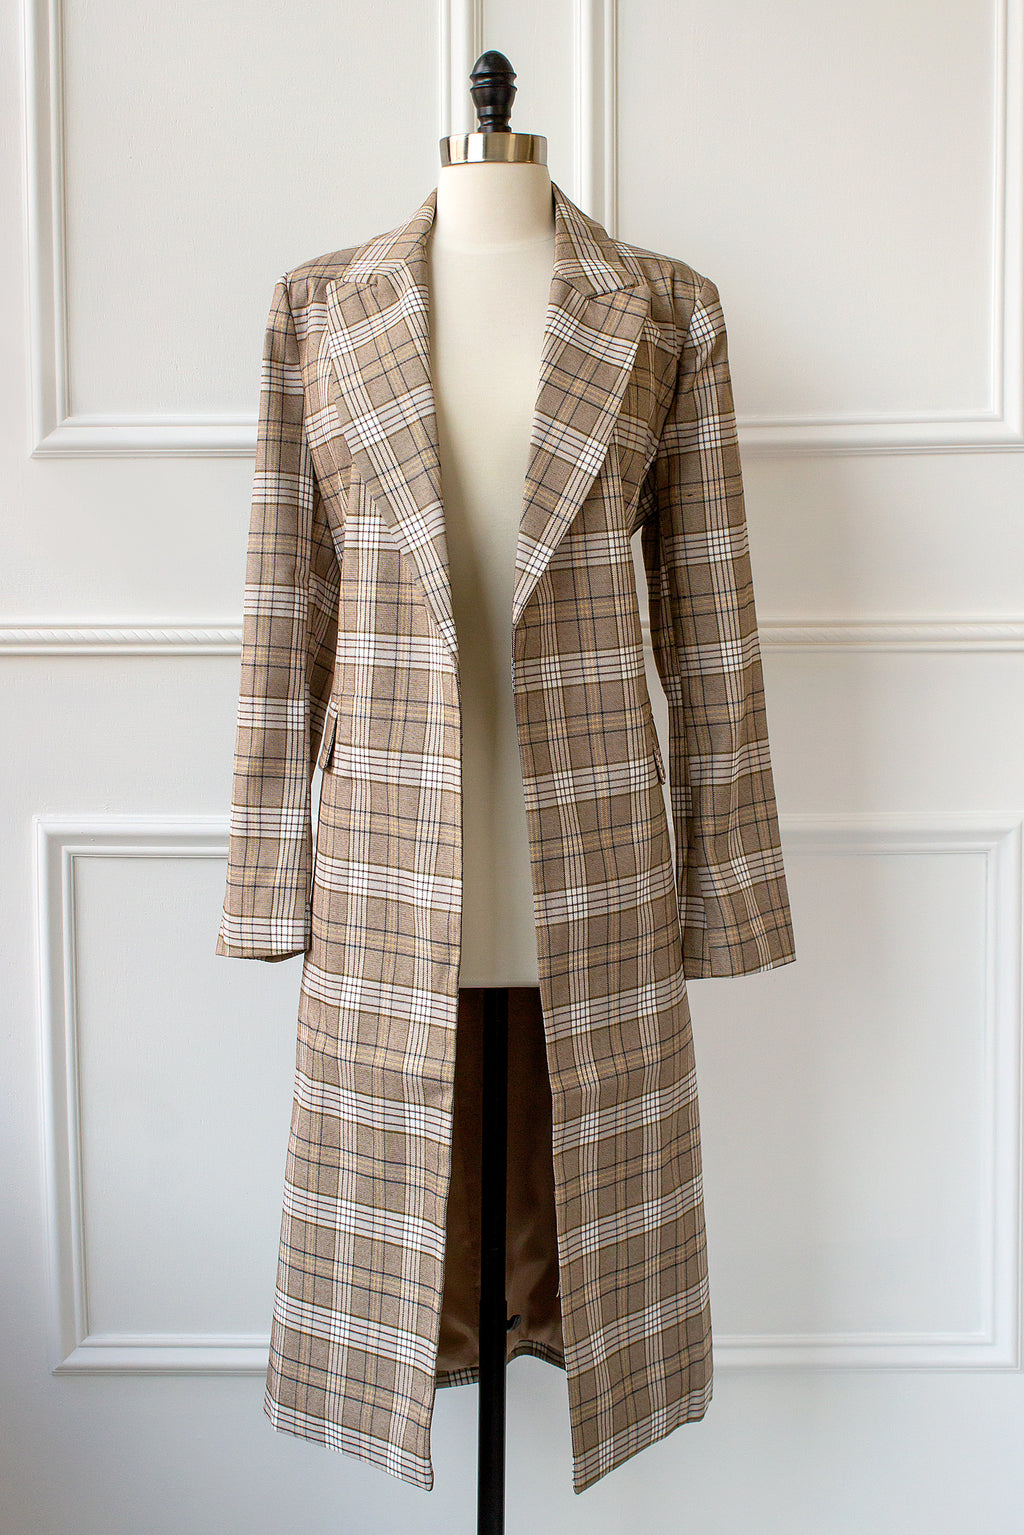 long plaid jacket for spring or fall